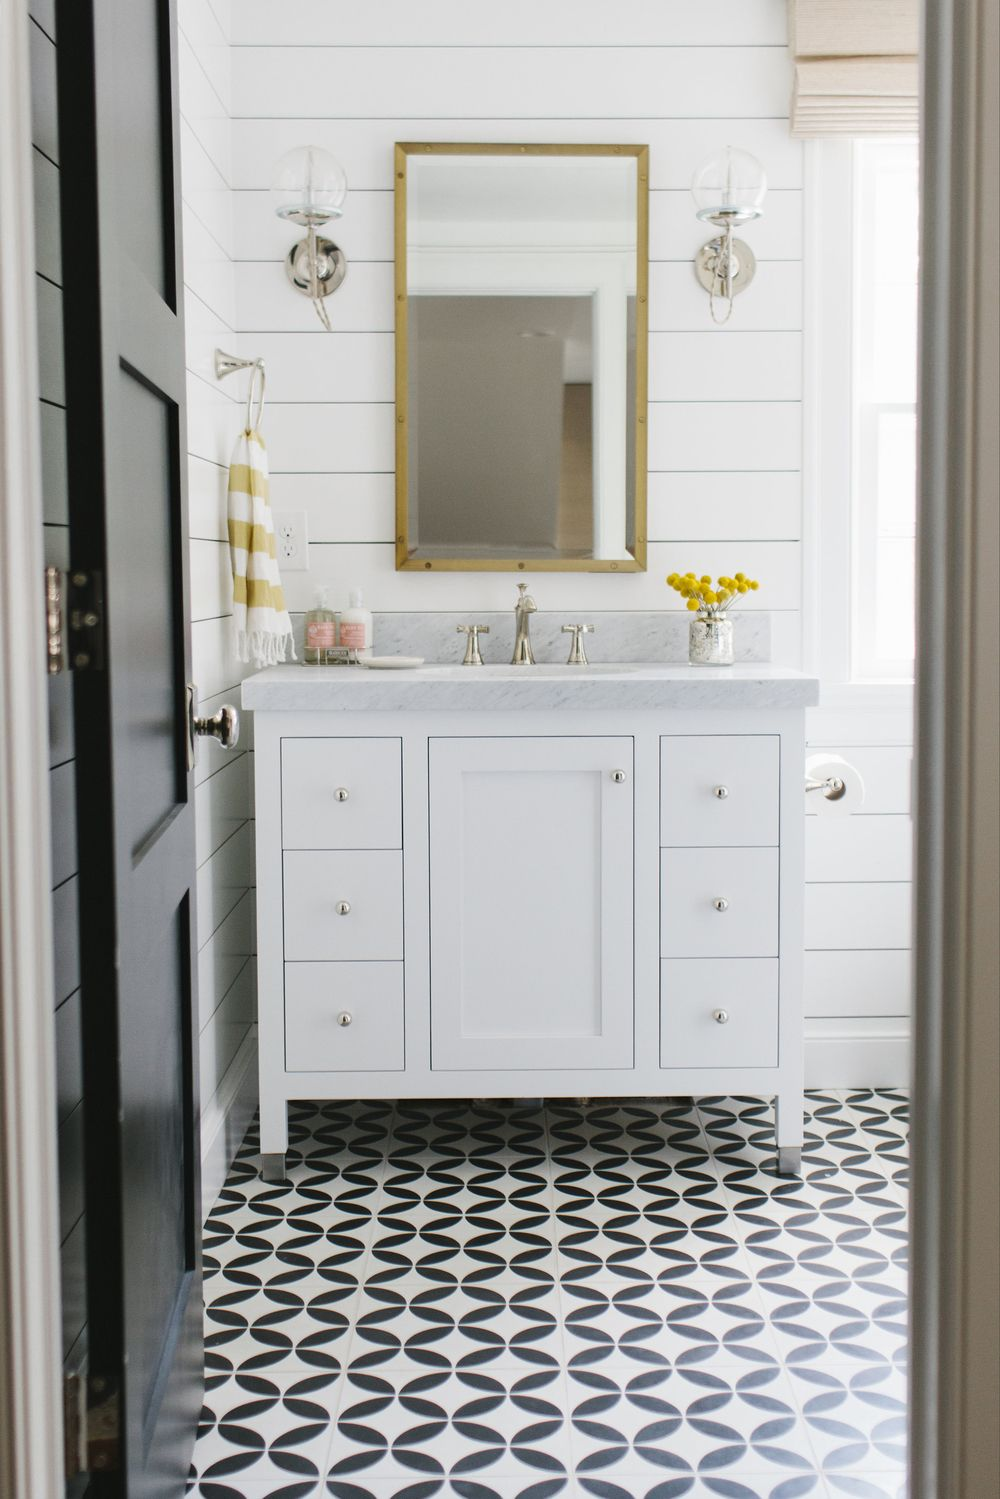 lynwood remodel guest bathroom